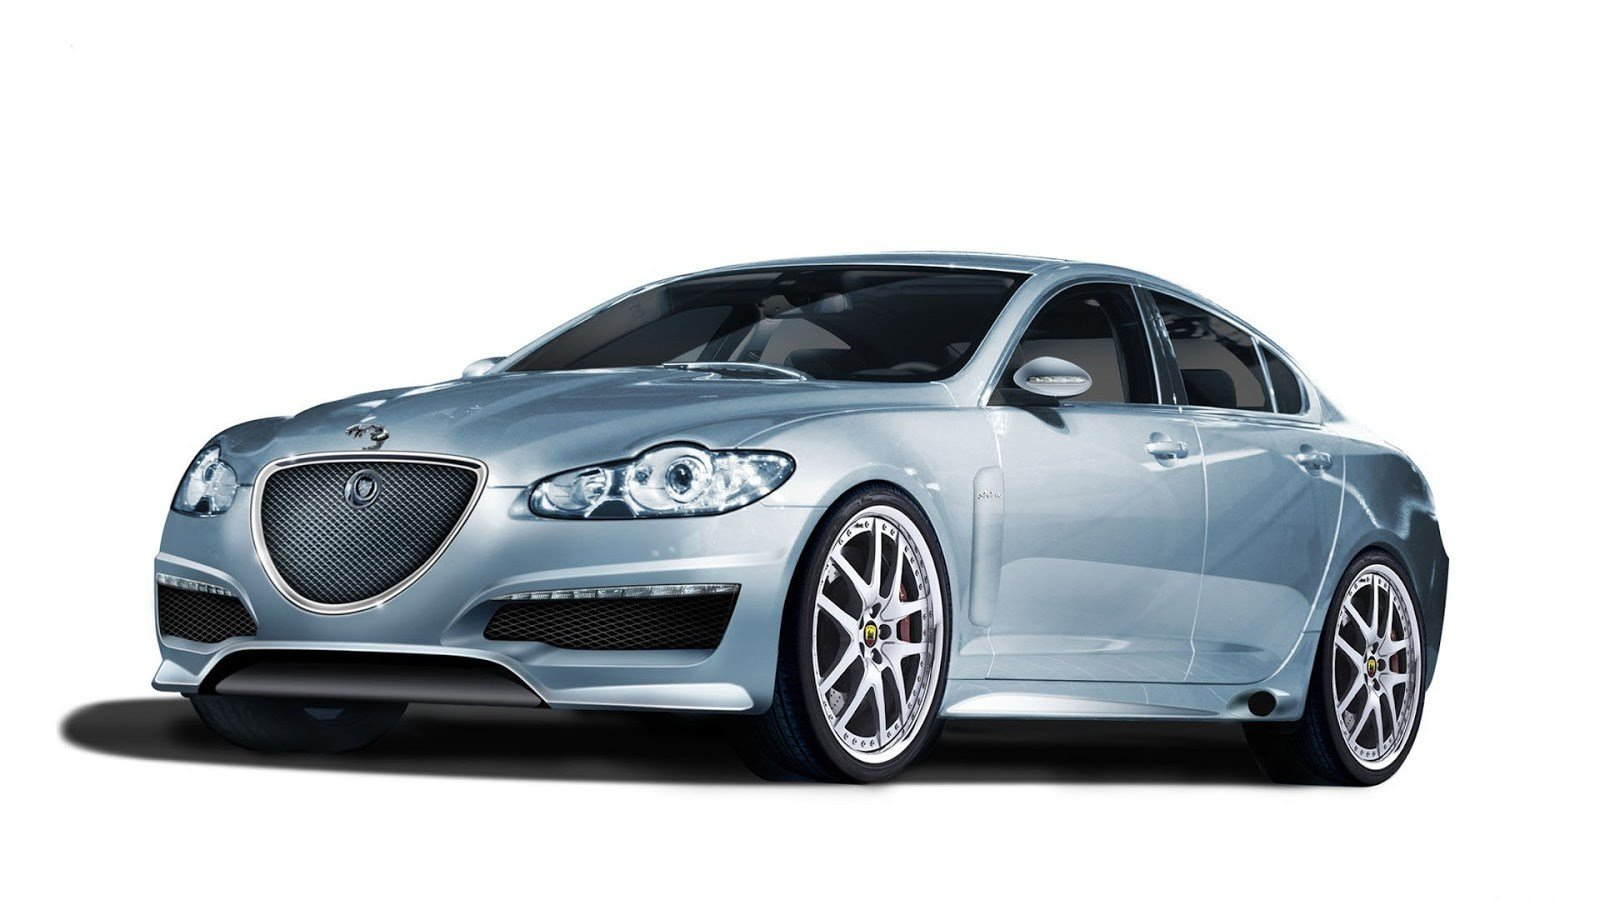 New 2015 Jaguar Xf 17 Car Hd Wallpaper On This Month